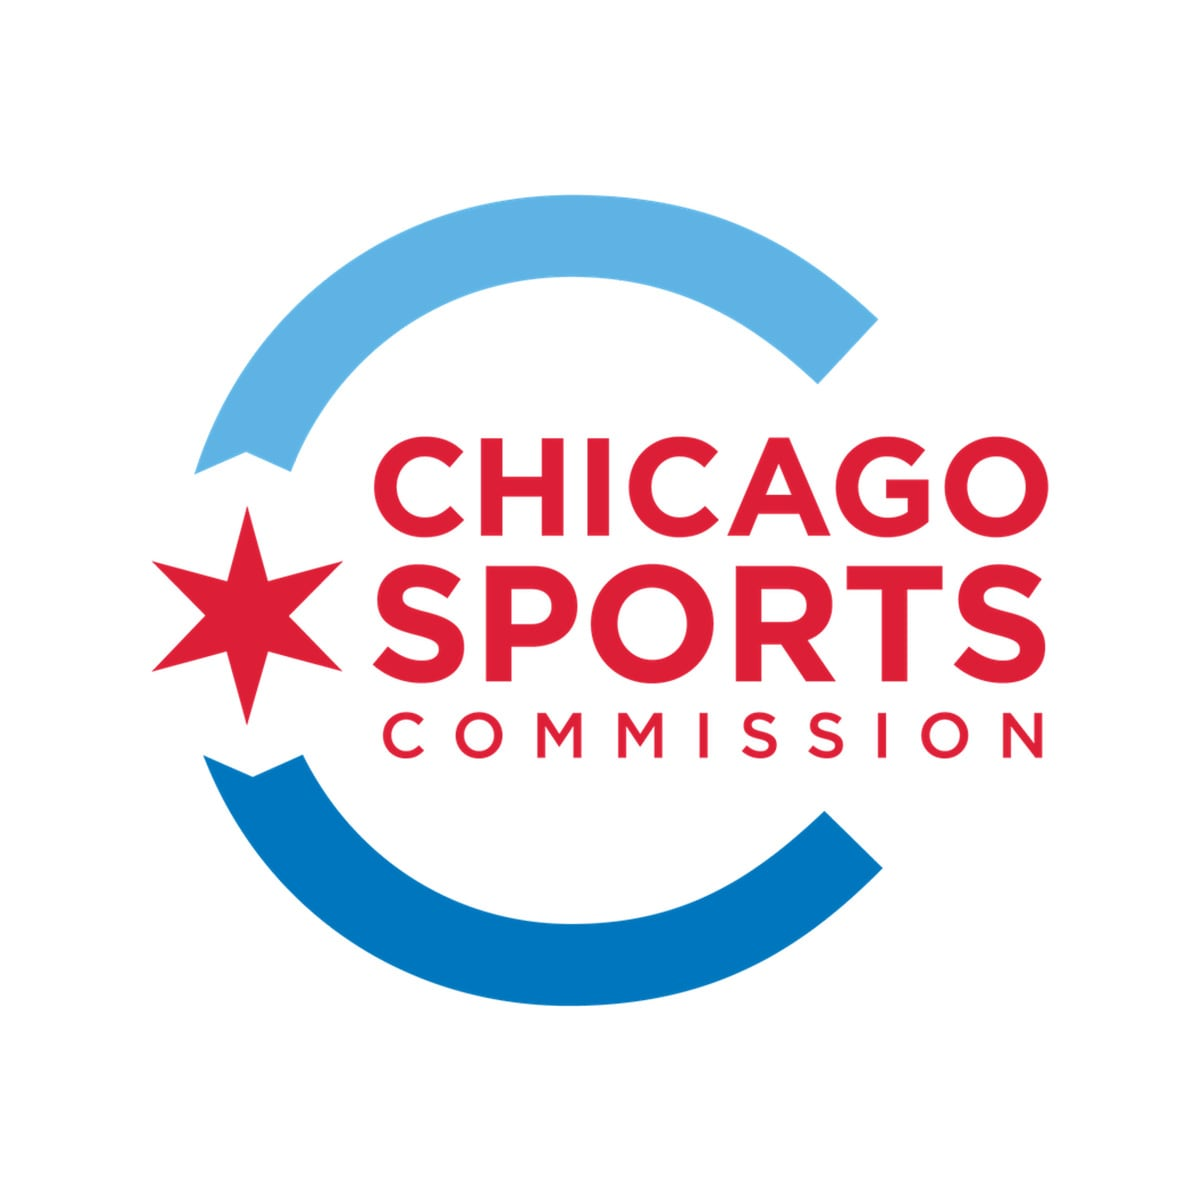 Chicago Sports Commission